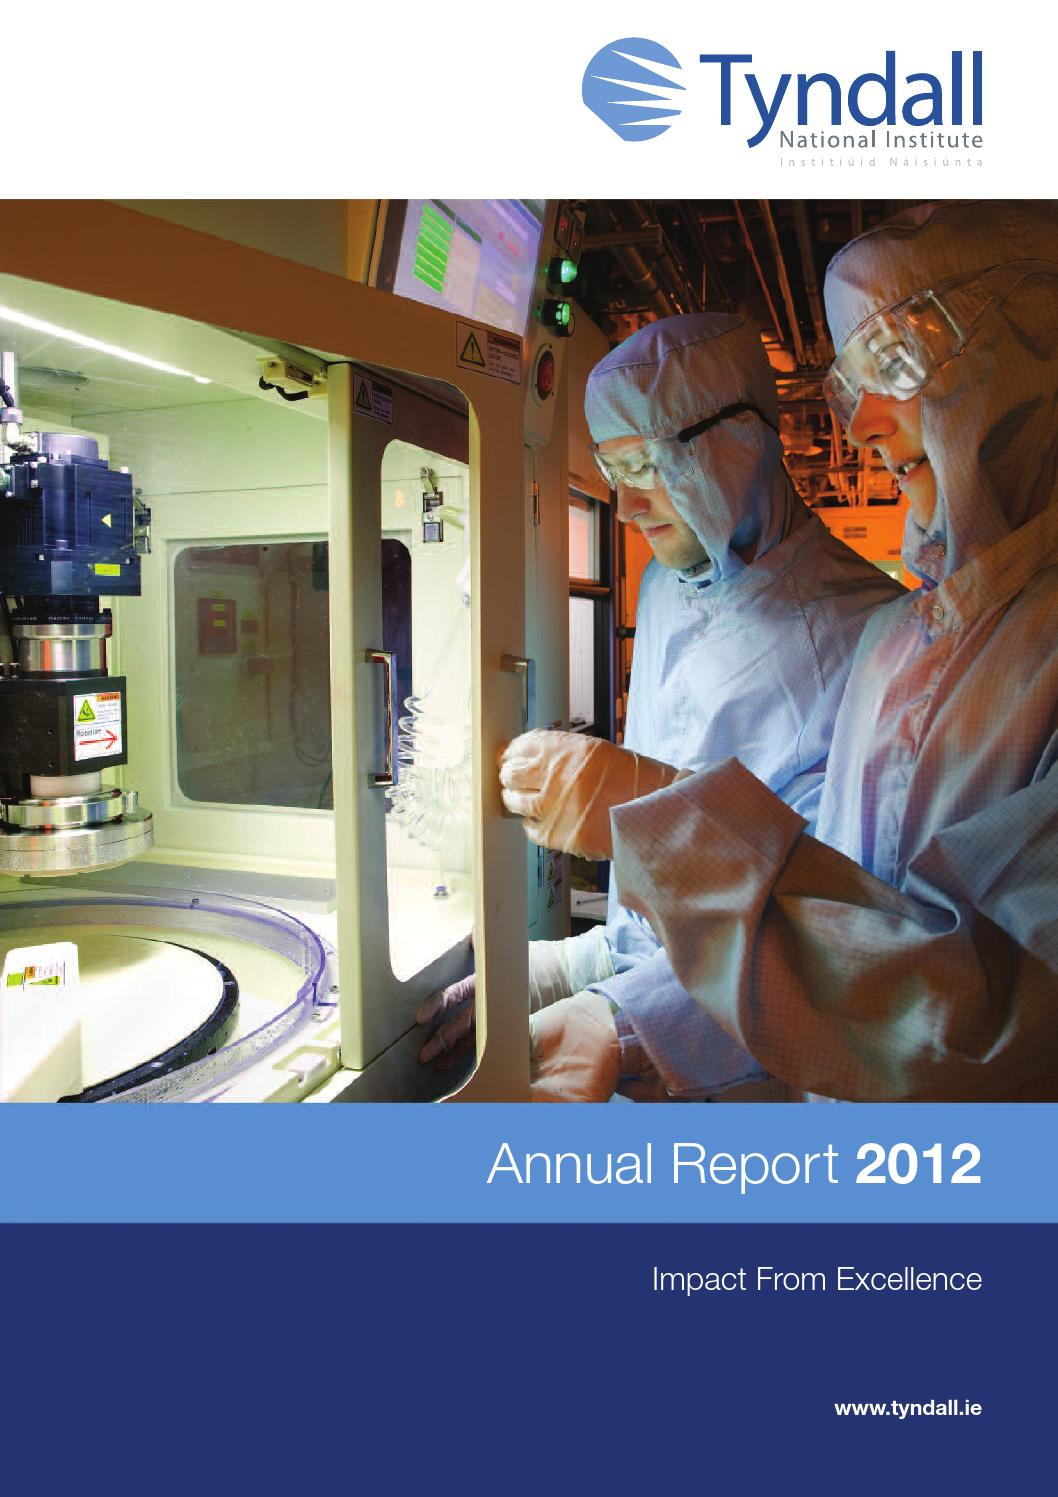 Tyndall Annual Report 2012 by Anthony MacCarthy - issuu